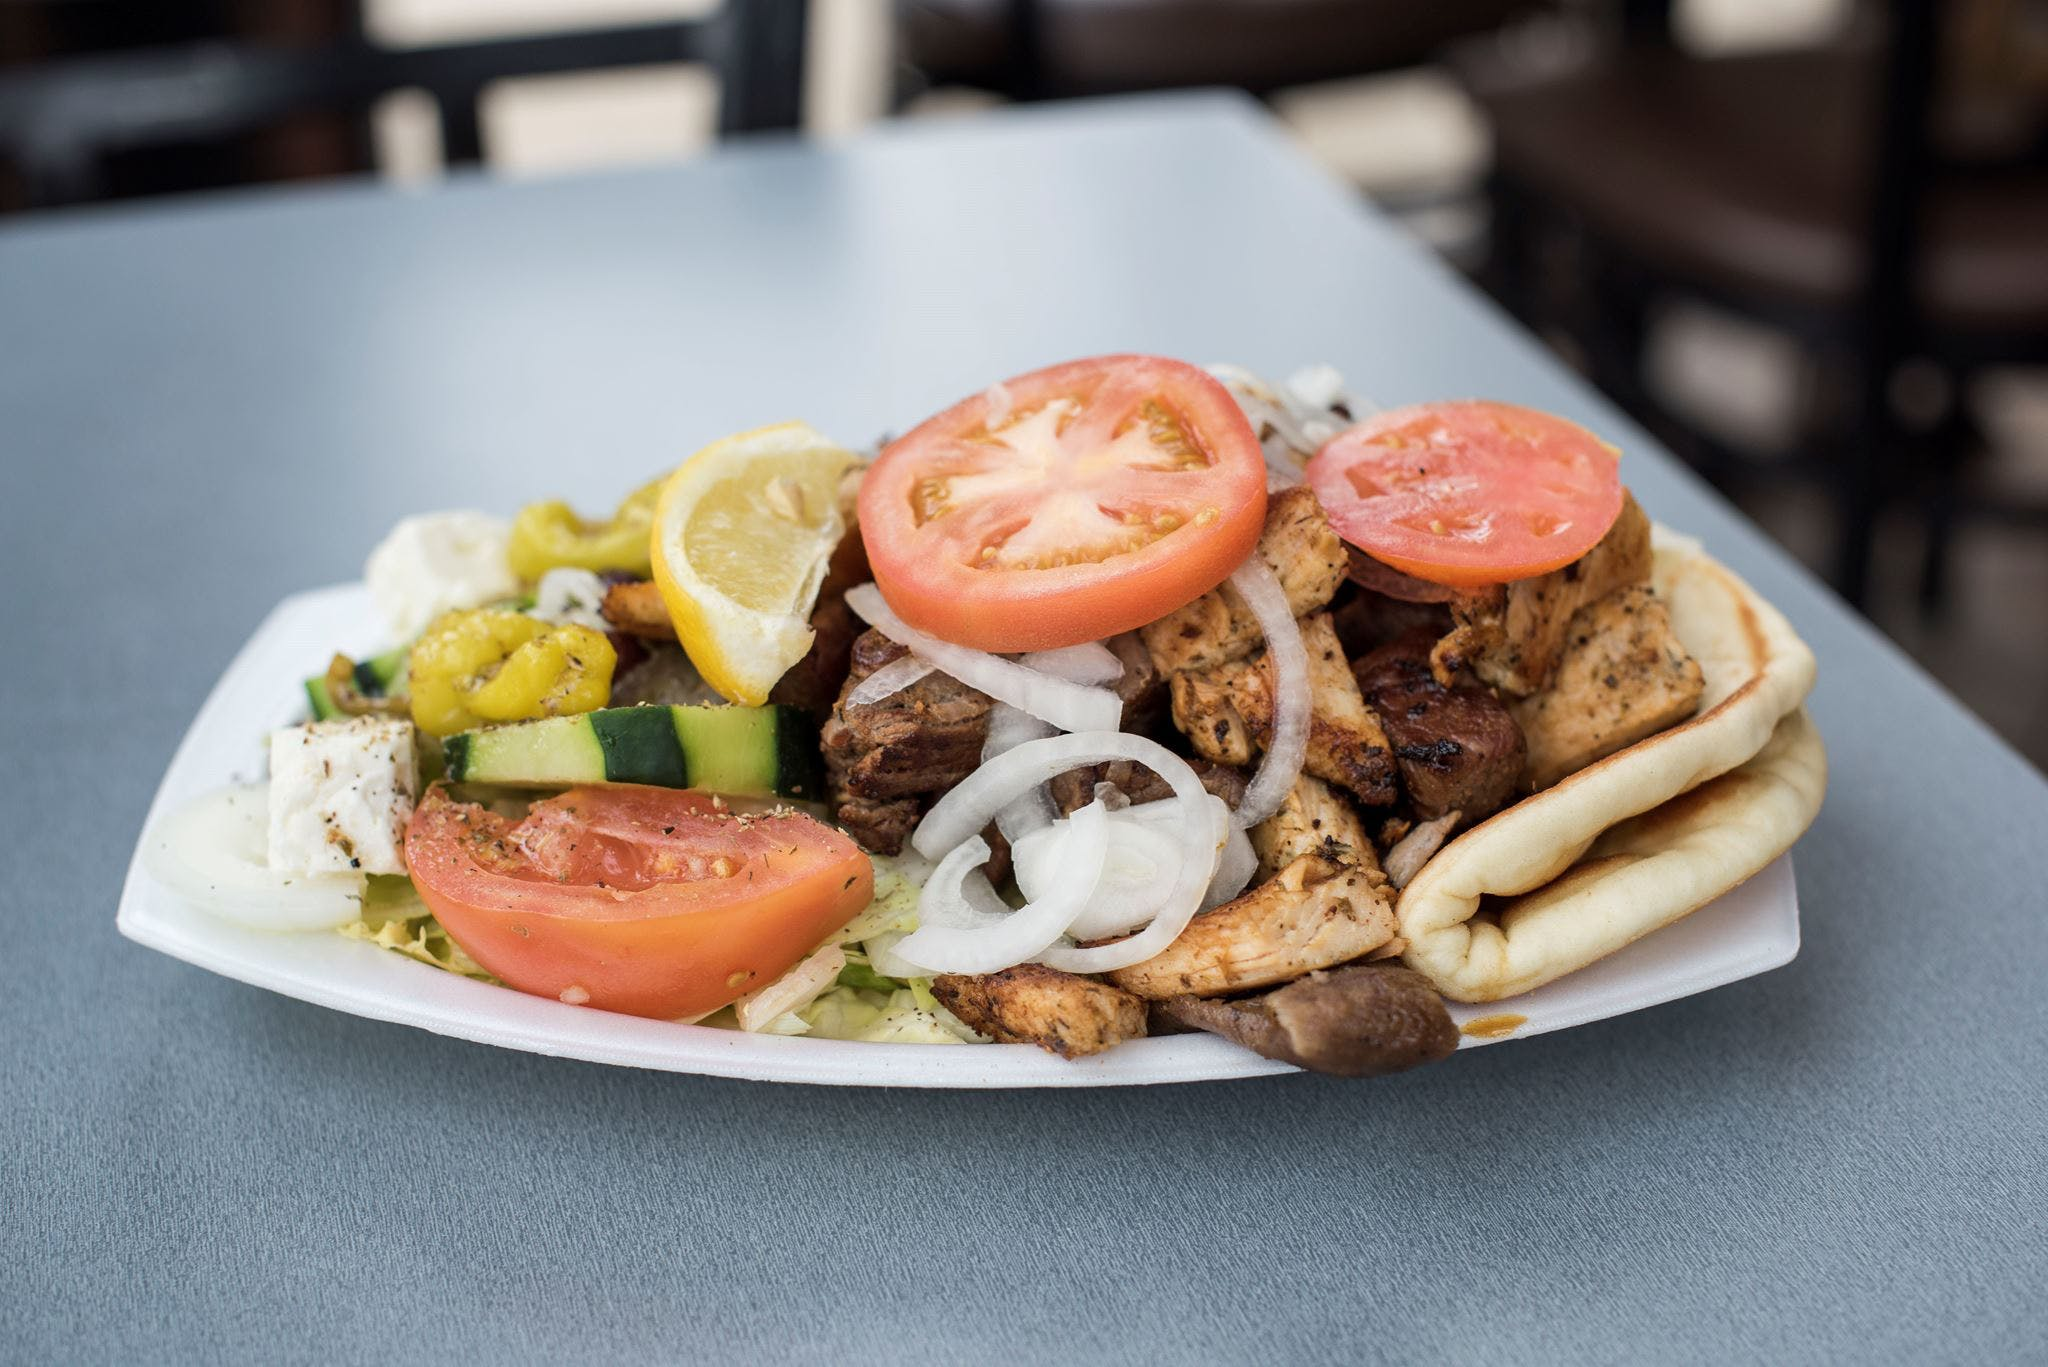 Palace Dinner Plate from Gyro Palace - Glendale in Glendale, WI